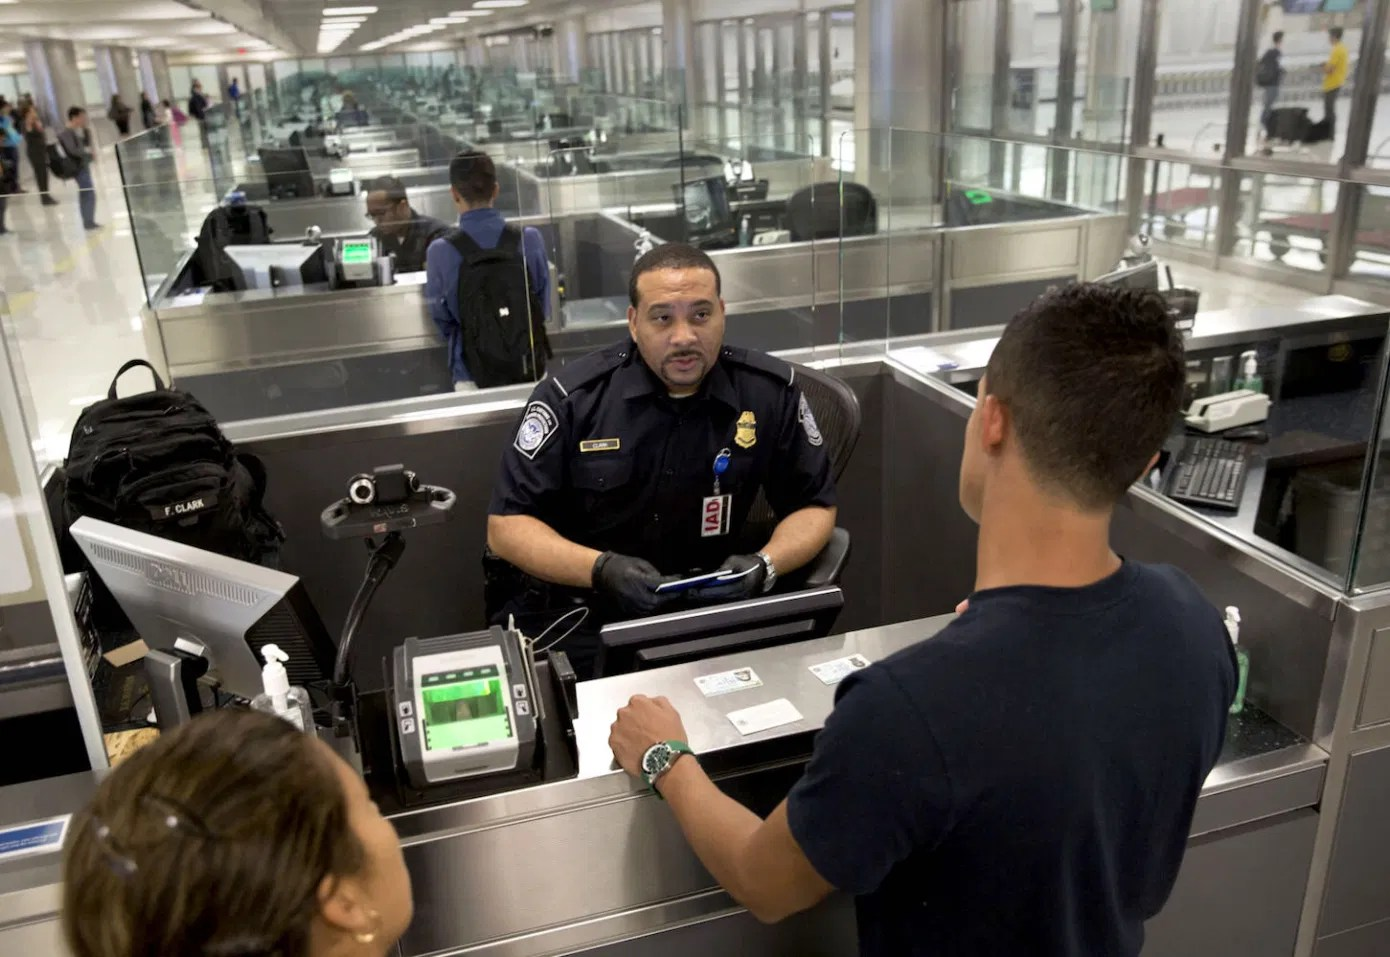 """You are currently viewing """"Let in the good and keep out the bad"""" – Bordering and othering at the U.S port of entry"""